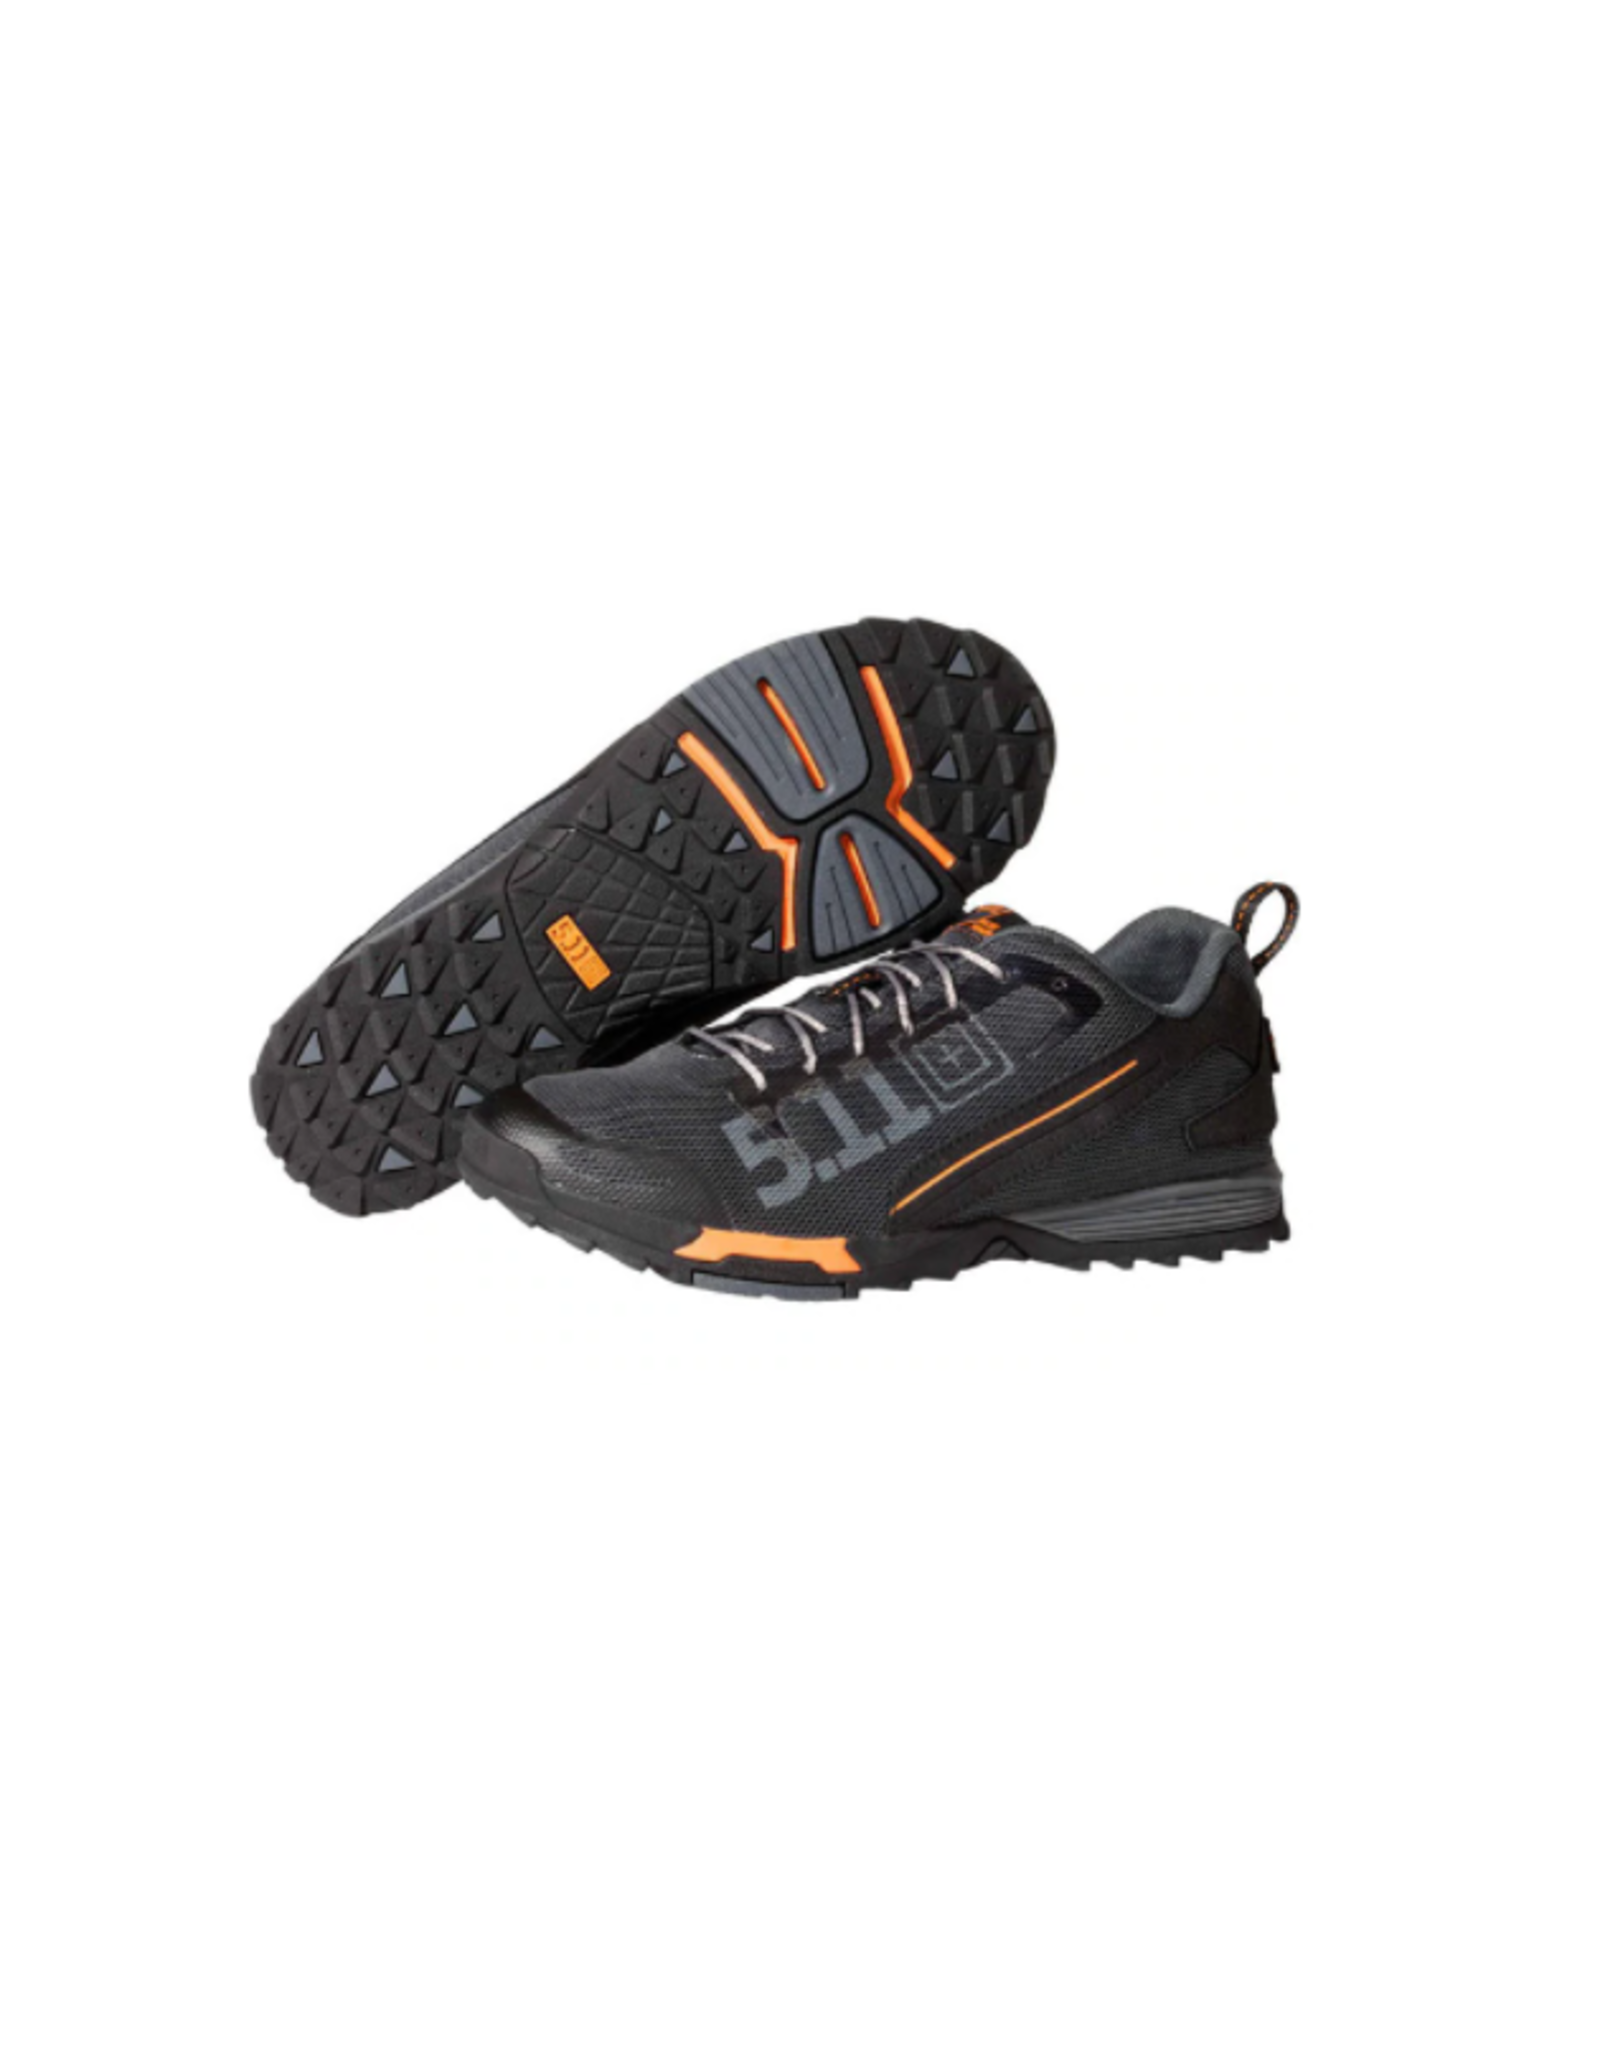 5.11 Tactical ABR TRAINER GECKO 10.5